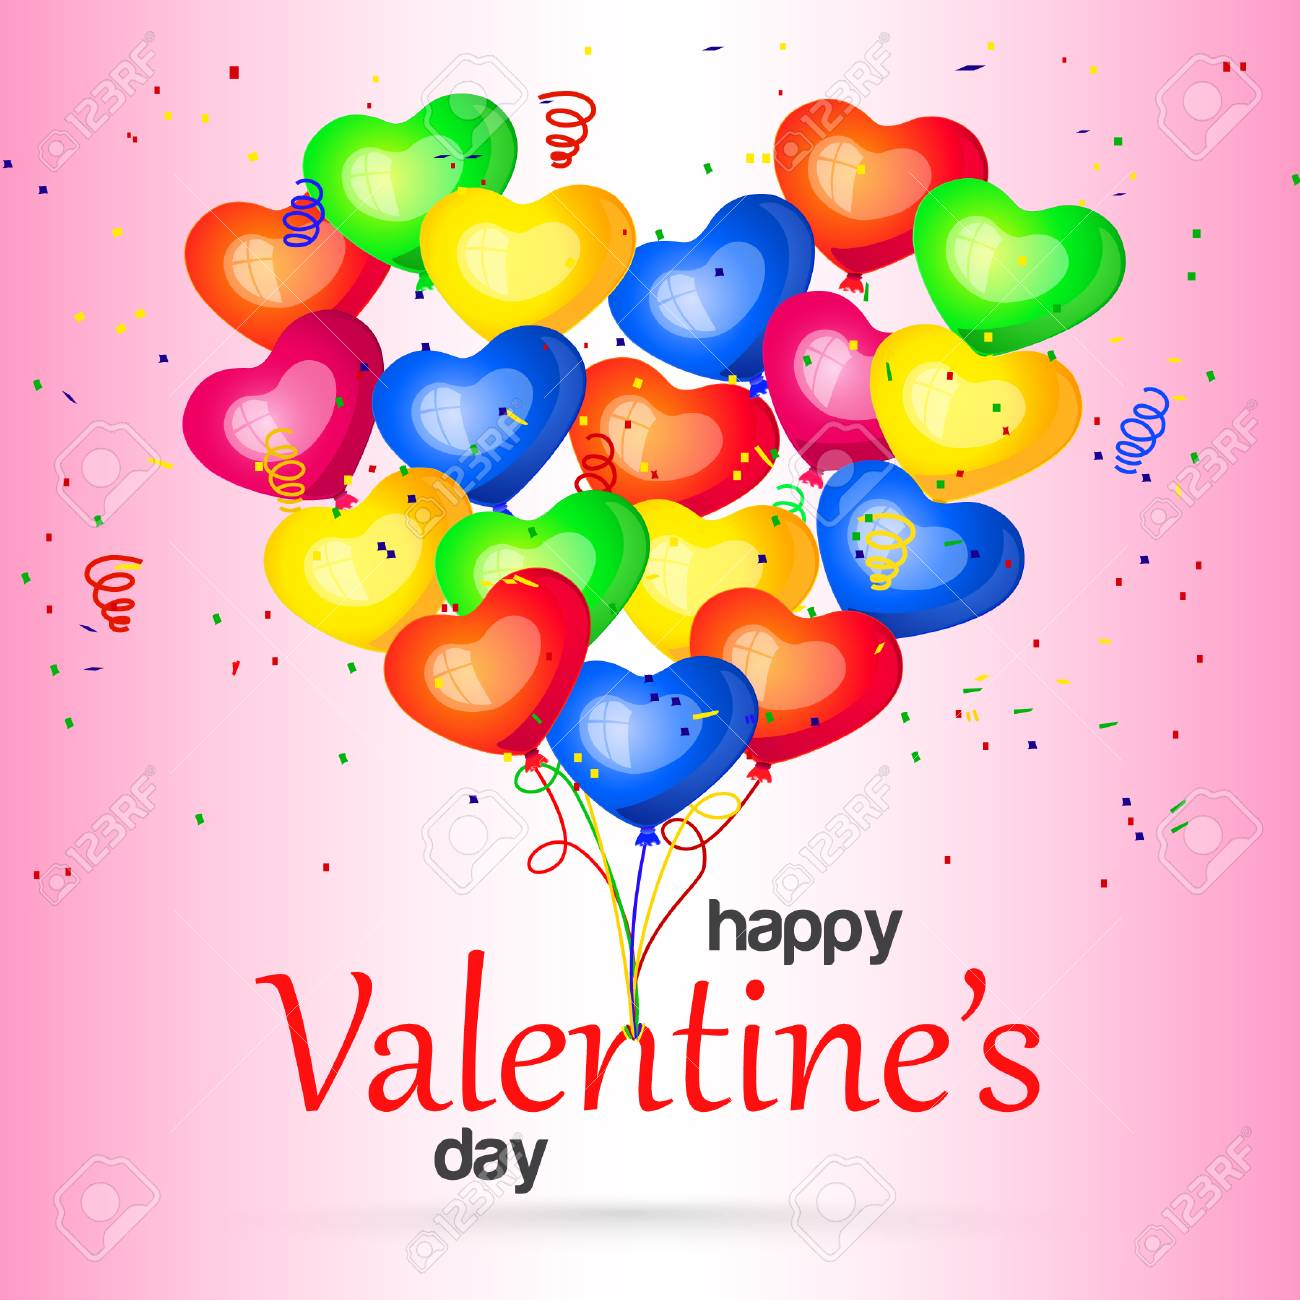 Happy Valentines Day Colorful Heart Balloons Postcard Party